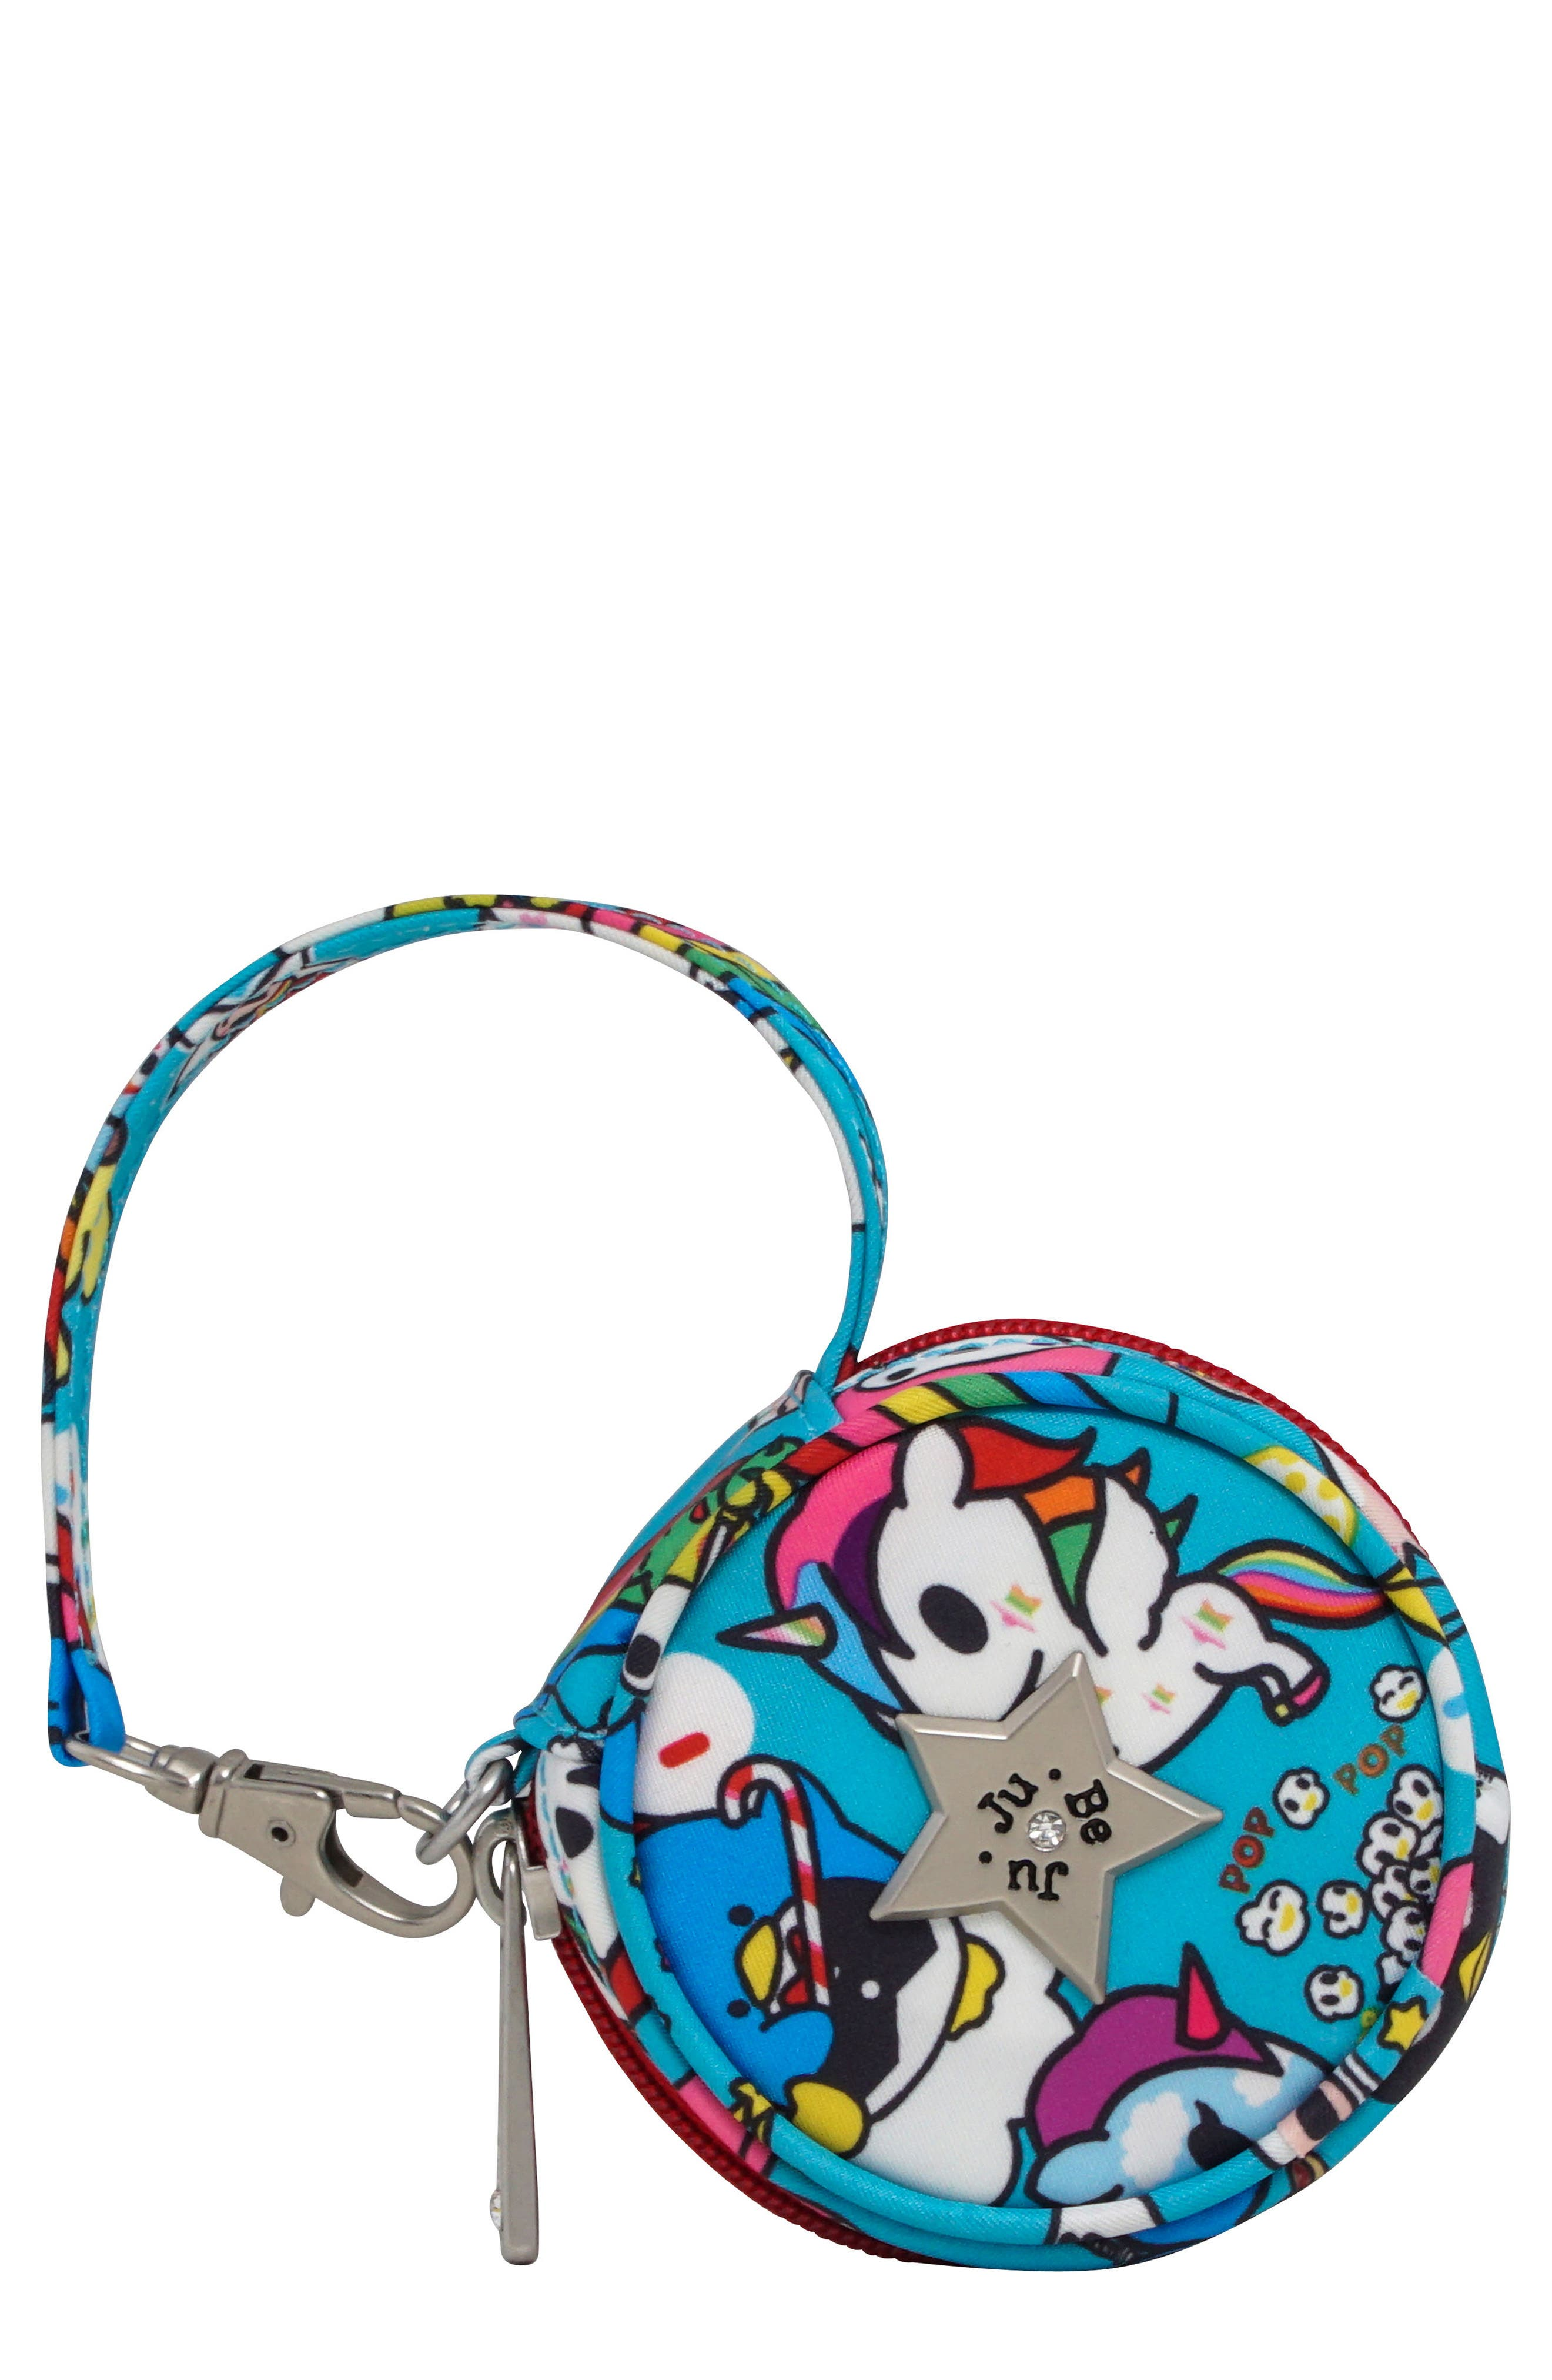 x tokidoki for Hello Sanrio Rainbow Dreams Paci Pod Pouch,                             Main thumbnail 1, color,                             Rainbow Dreams